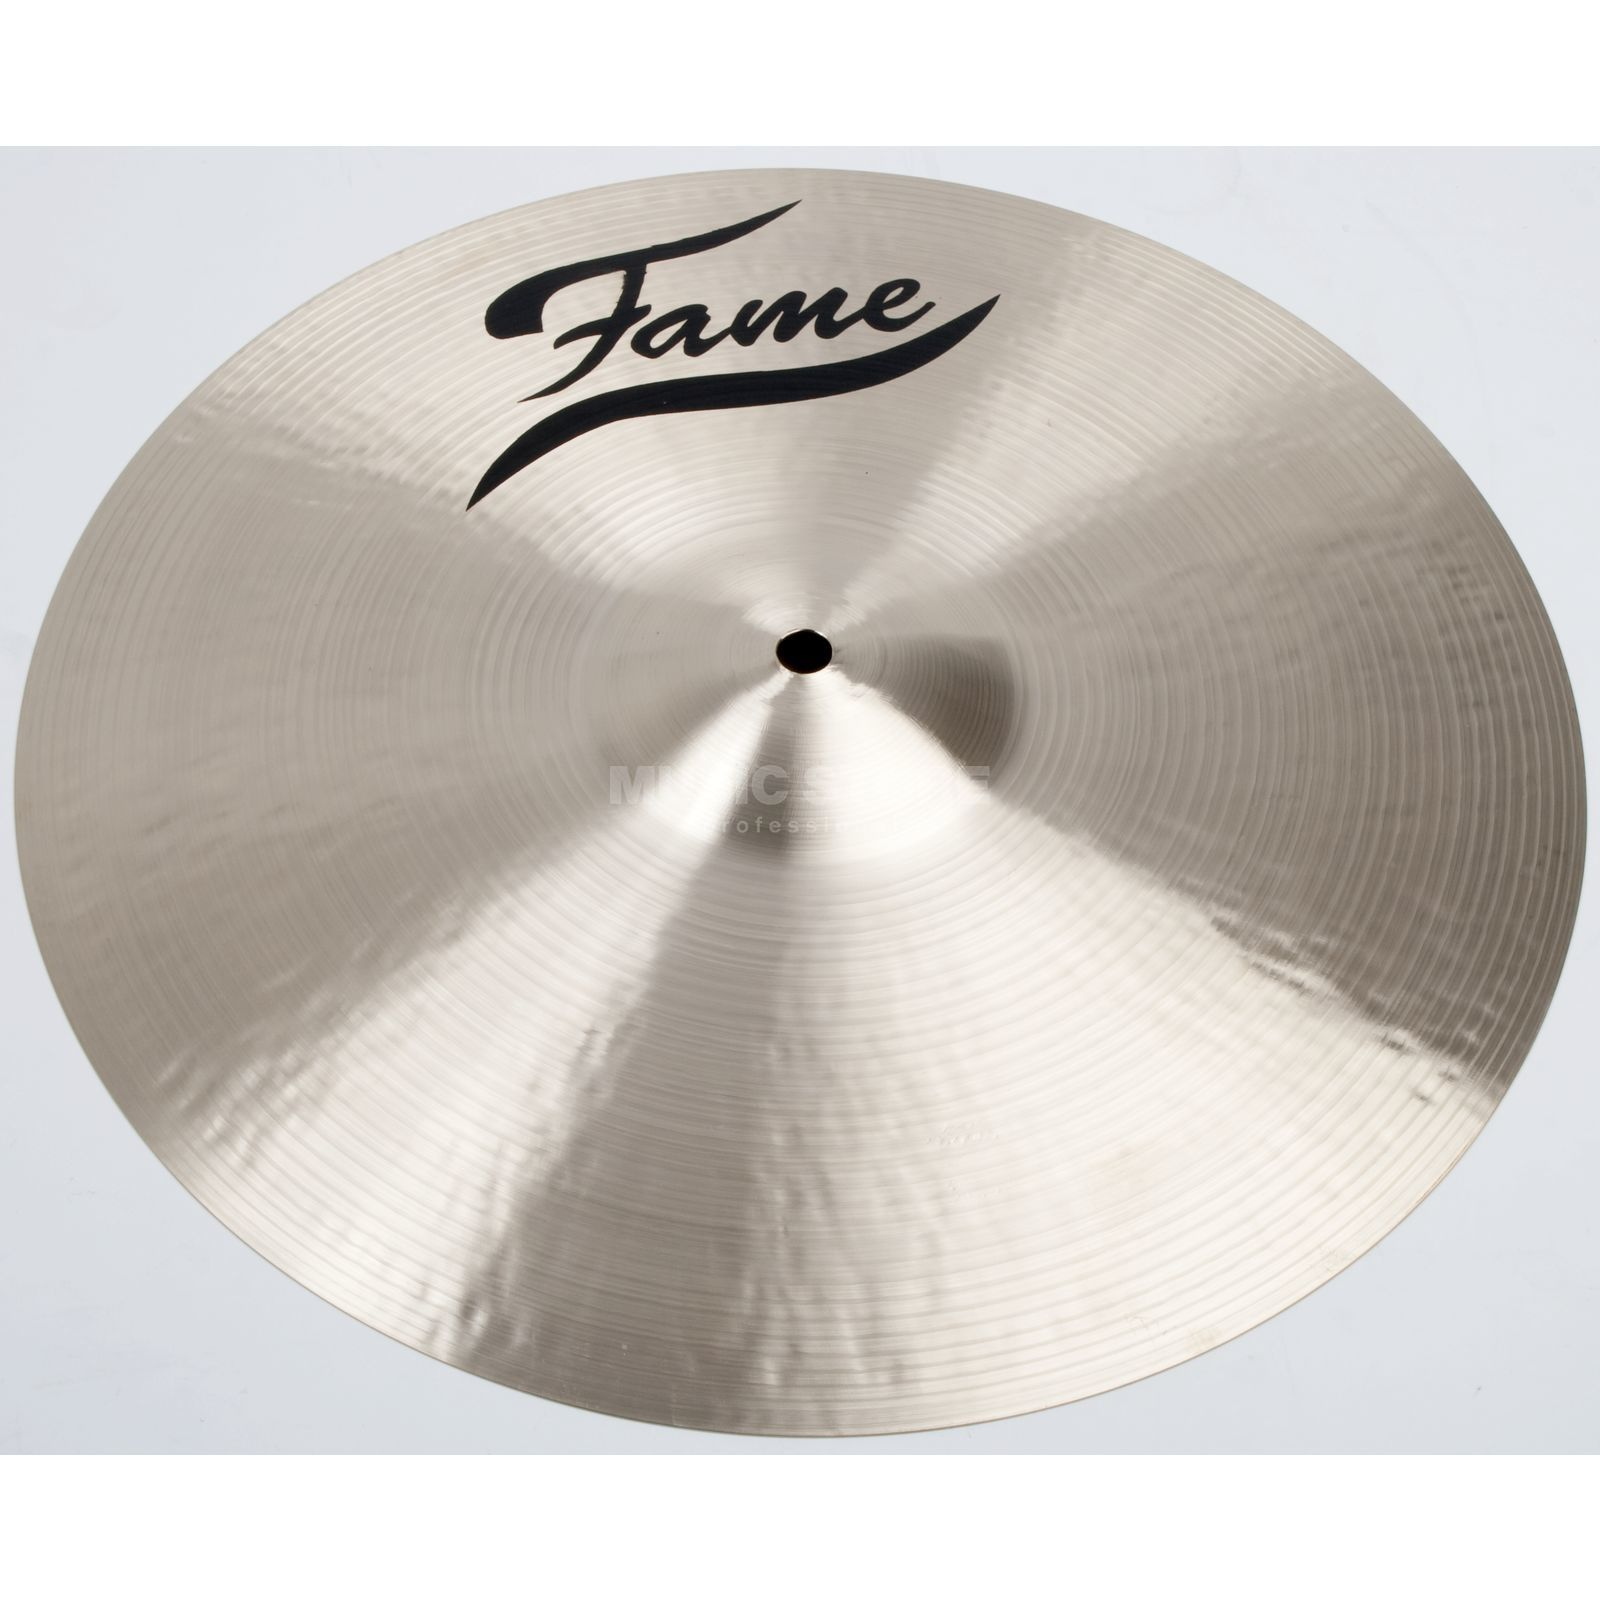 "Fame Masters B20 Heavy Crash 18"", Natural Finish Изображение товара"